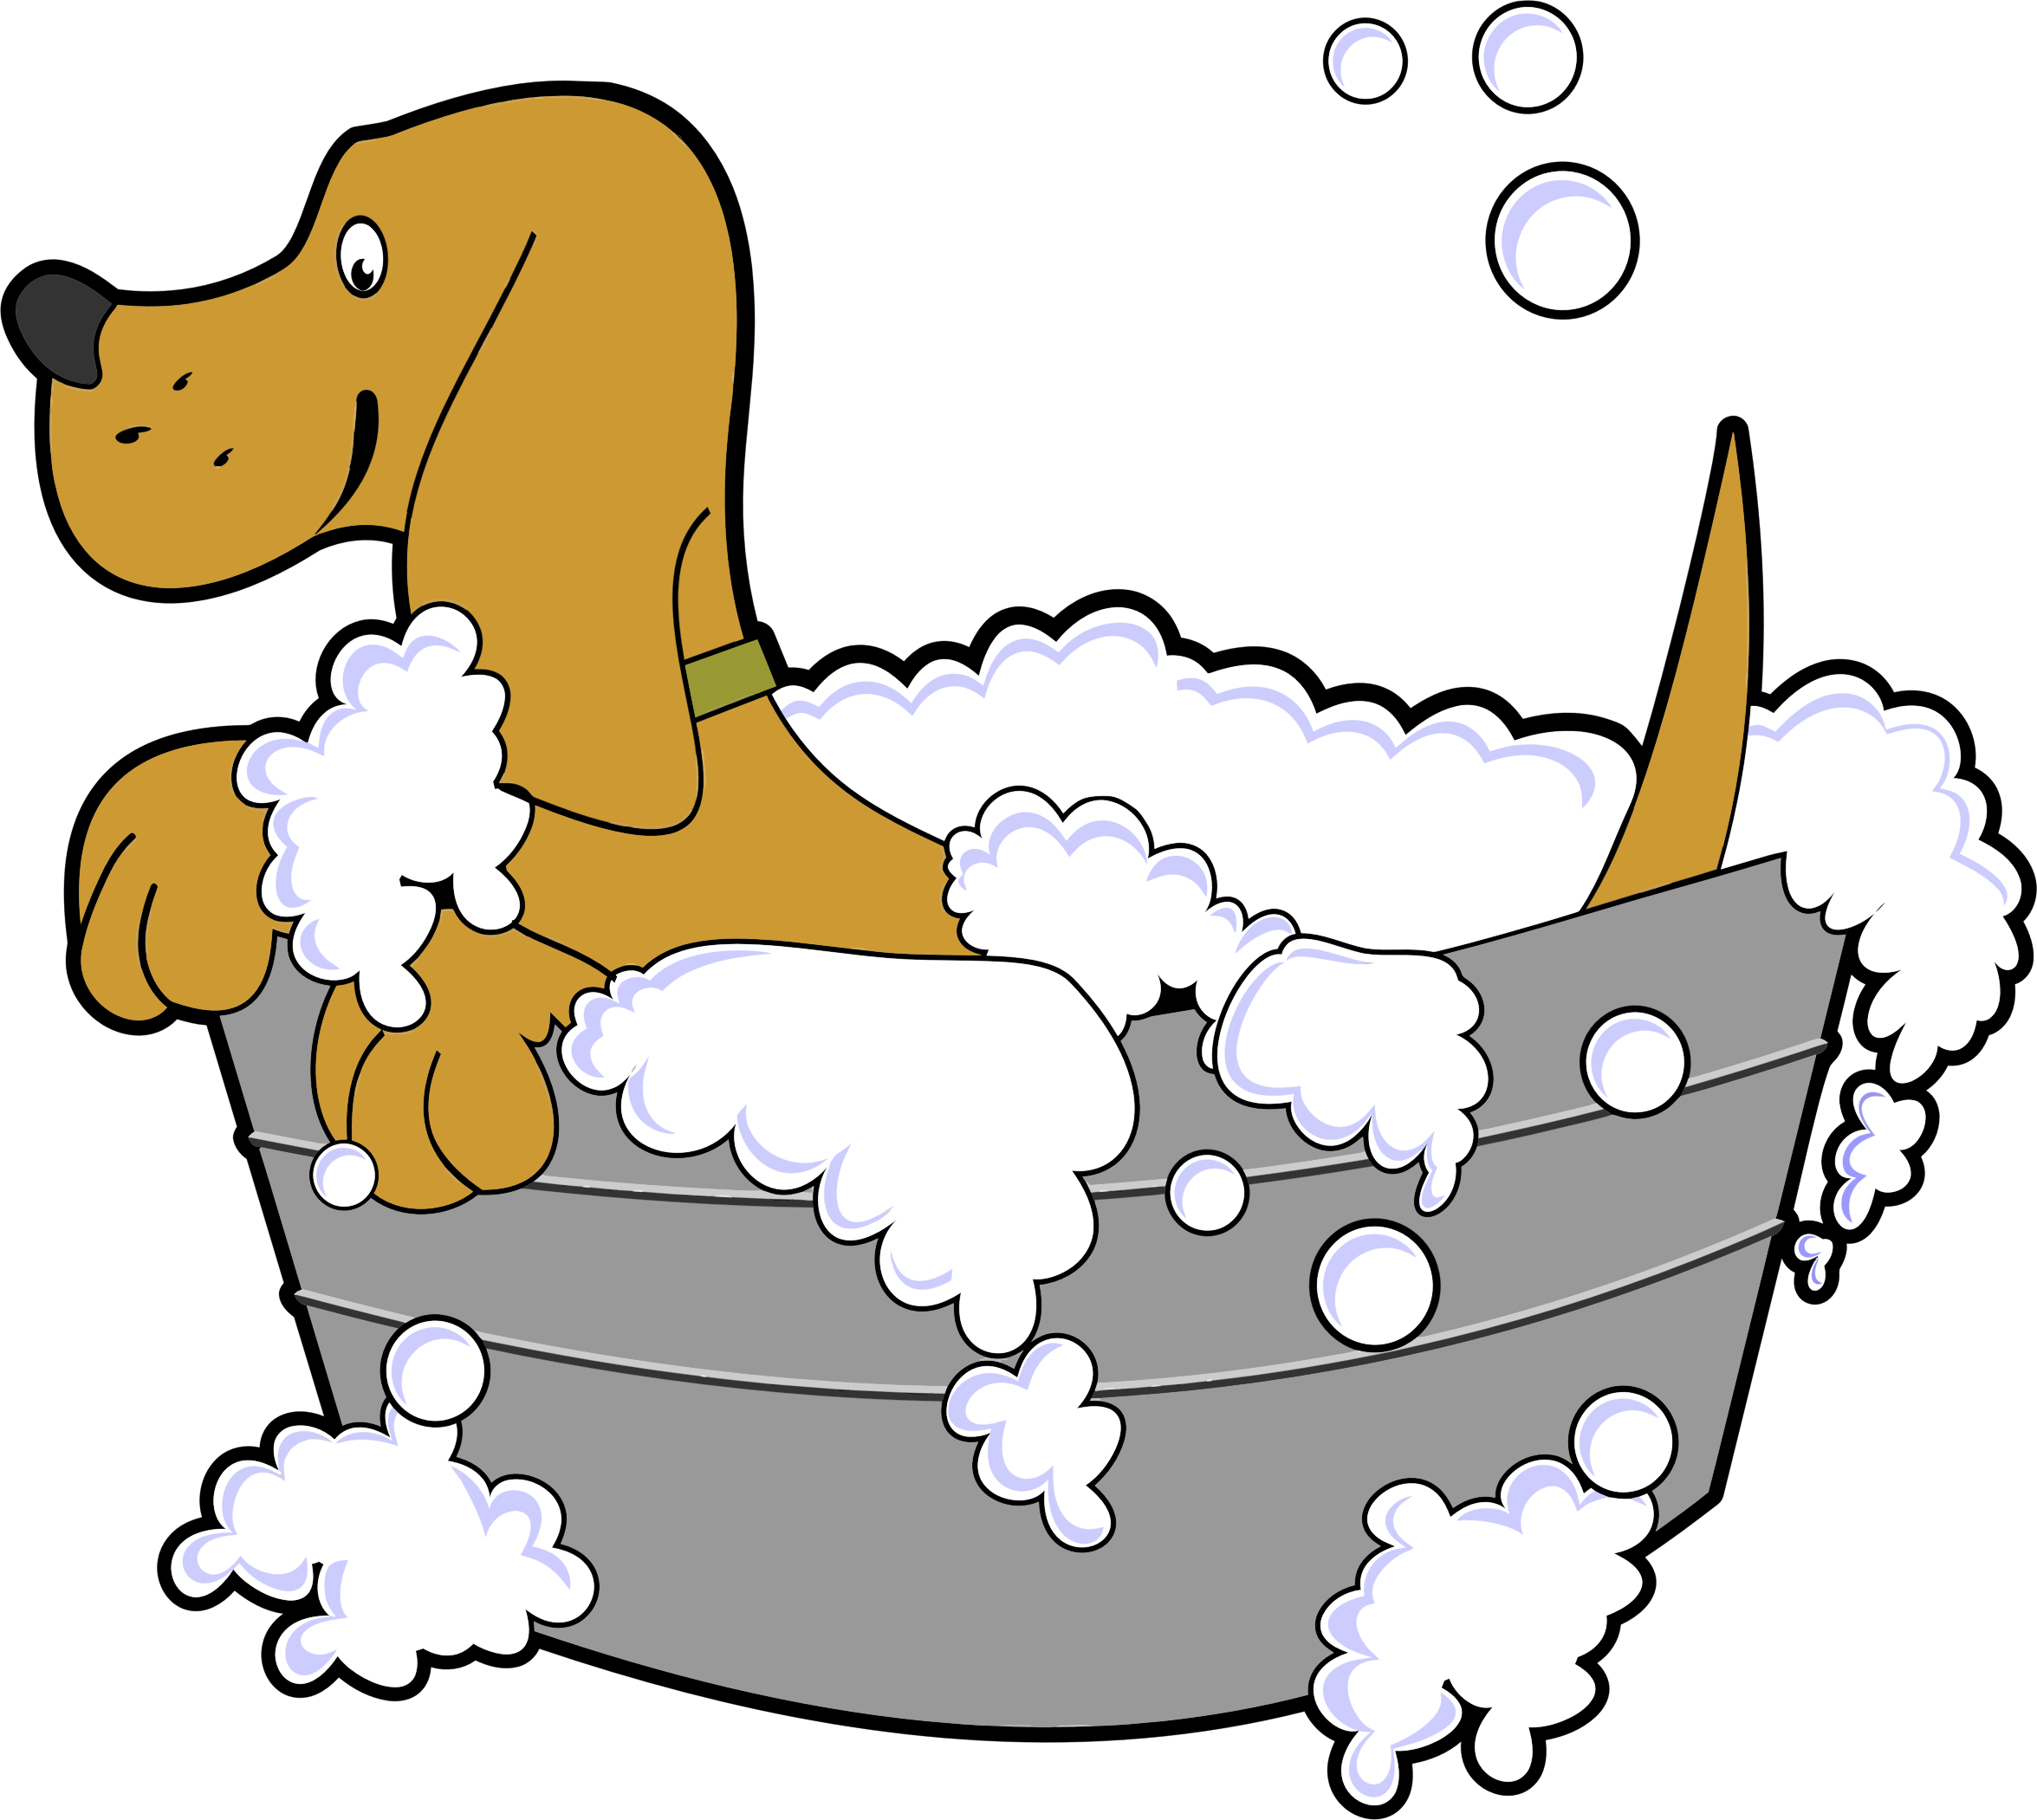 Washing dog clipart graphic royalty free download Clipart - Dog In Washing Tub graphic royalty free download